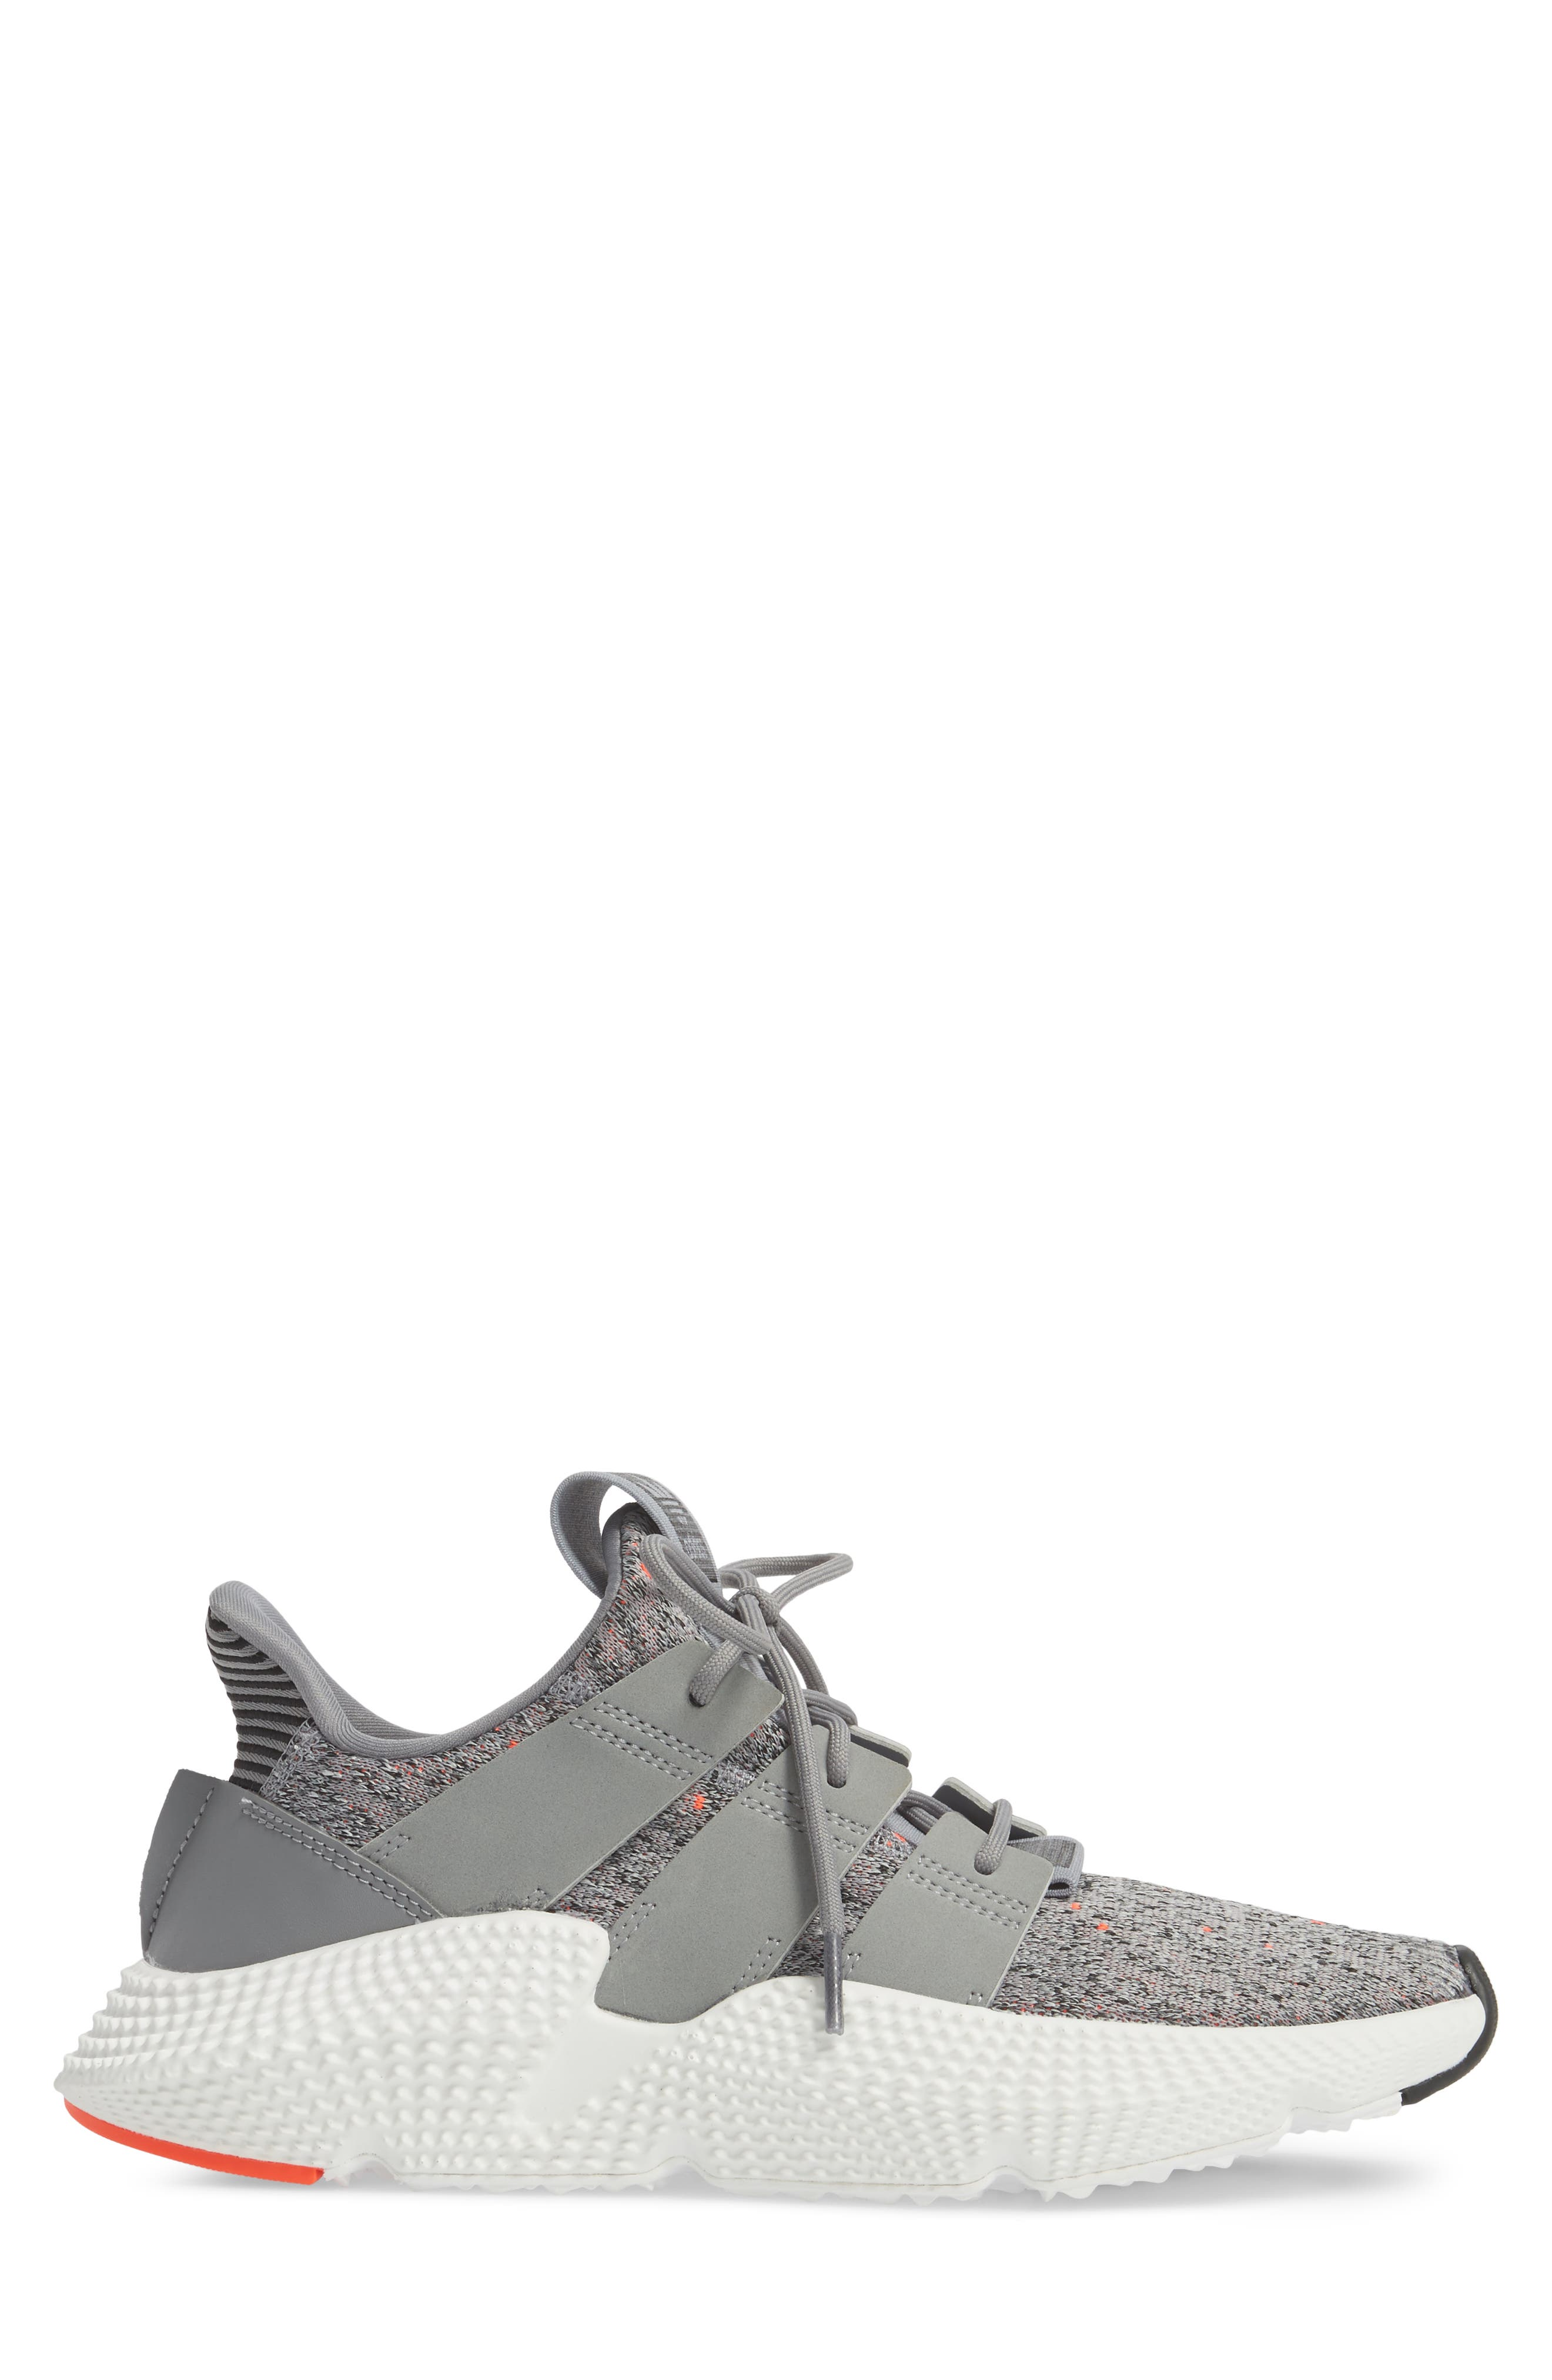 Prophere Sneaker,                             Alternate thumbnail 3, color,                             GREY/ WHITE/ SOLAR RED